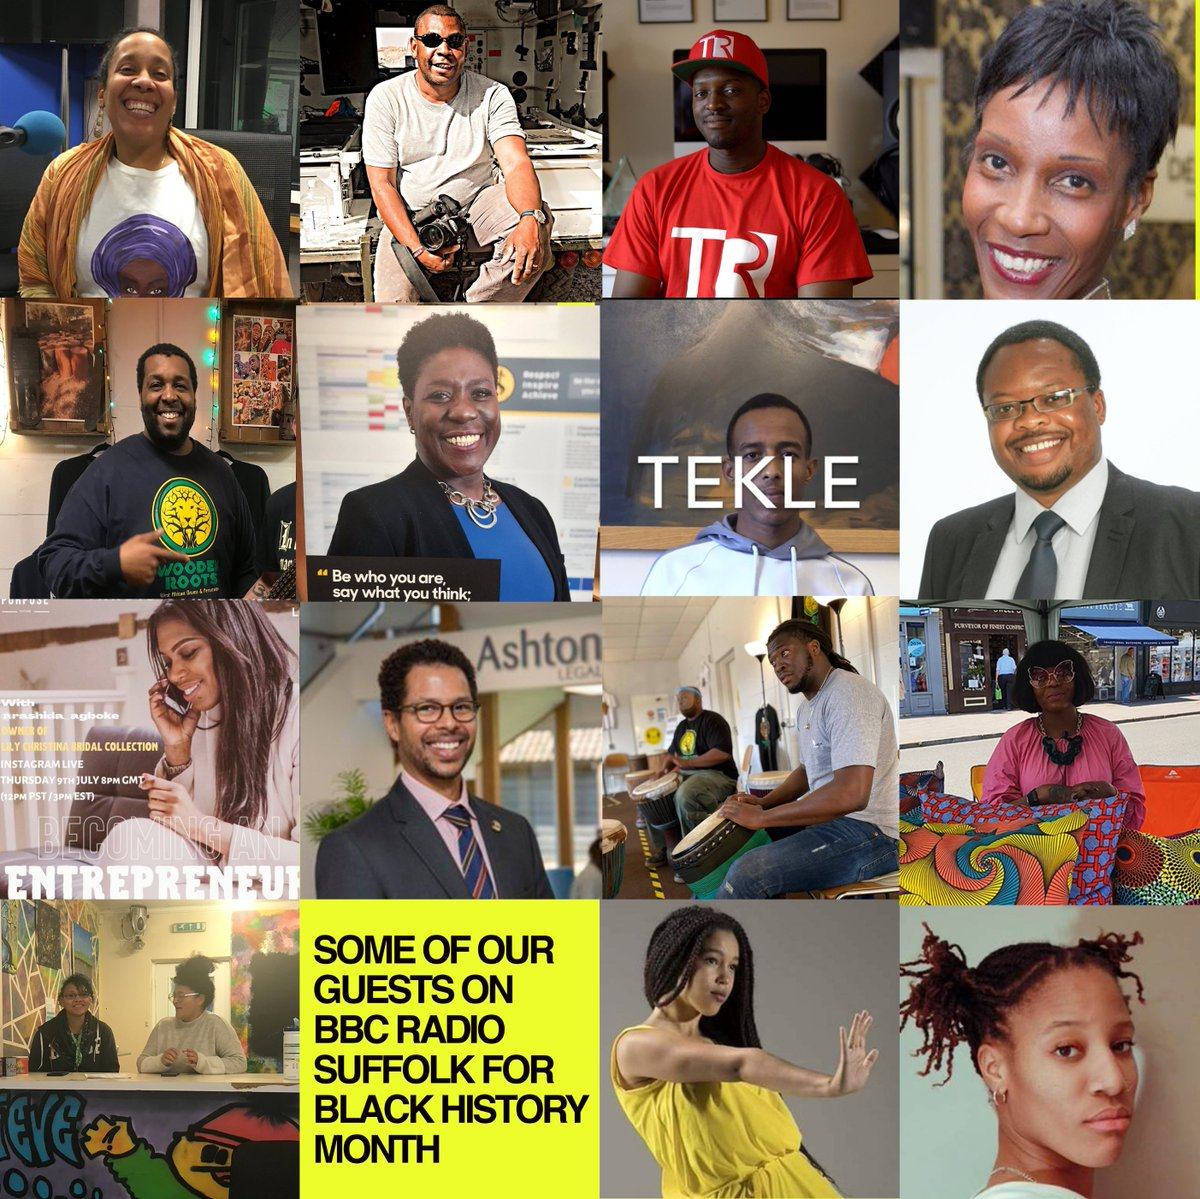 Here are just some of our wonderful guests ,businesses and projects we have celebrated across @BBCSuffolk for #BlackHistoryMonth many more people to come throughout the month + year as always  #blackhistoryyear - (can you spot #bbcbelongings presenter @handgeI Fridays 8 - 10pm👇)